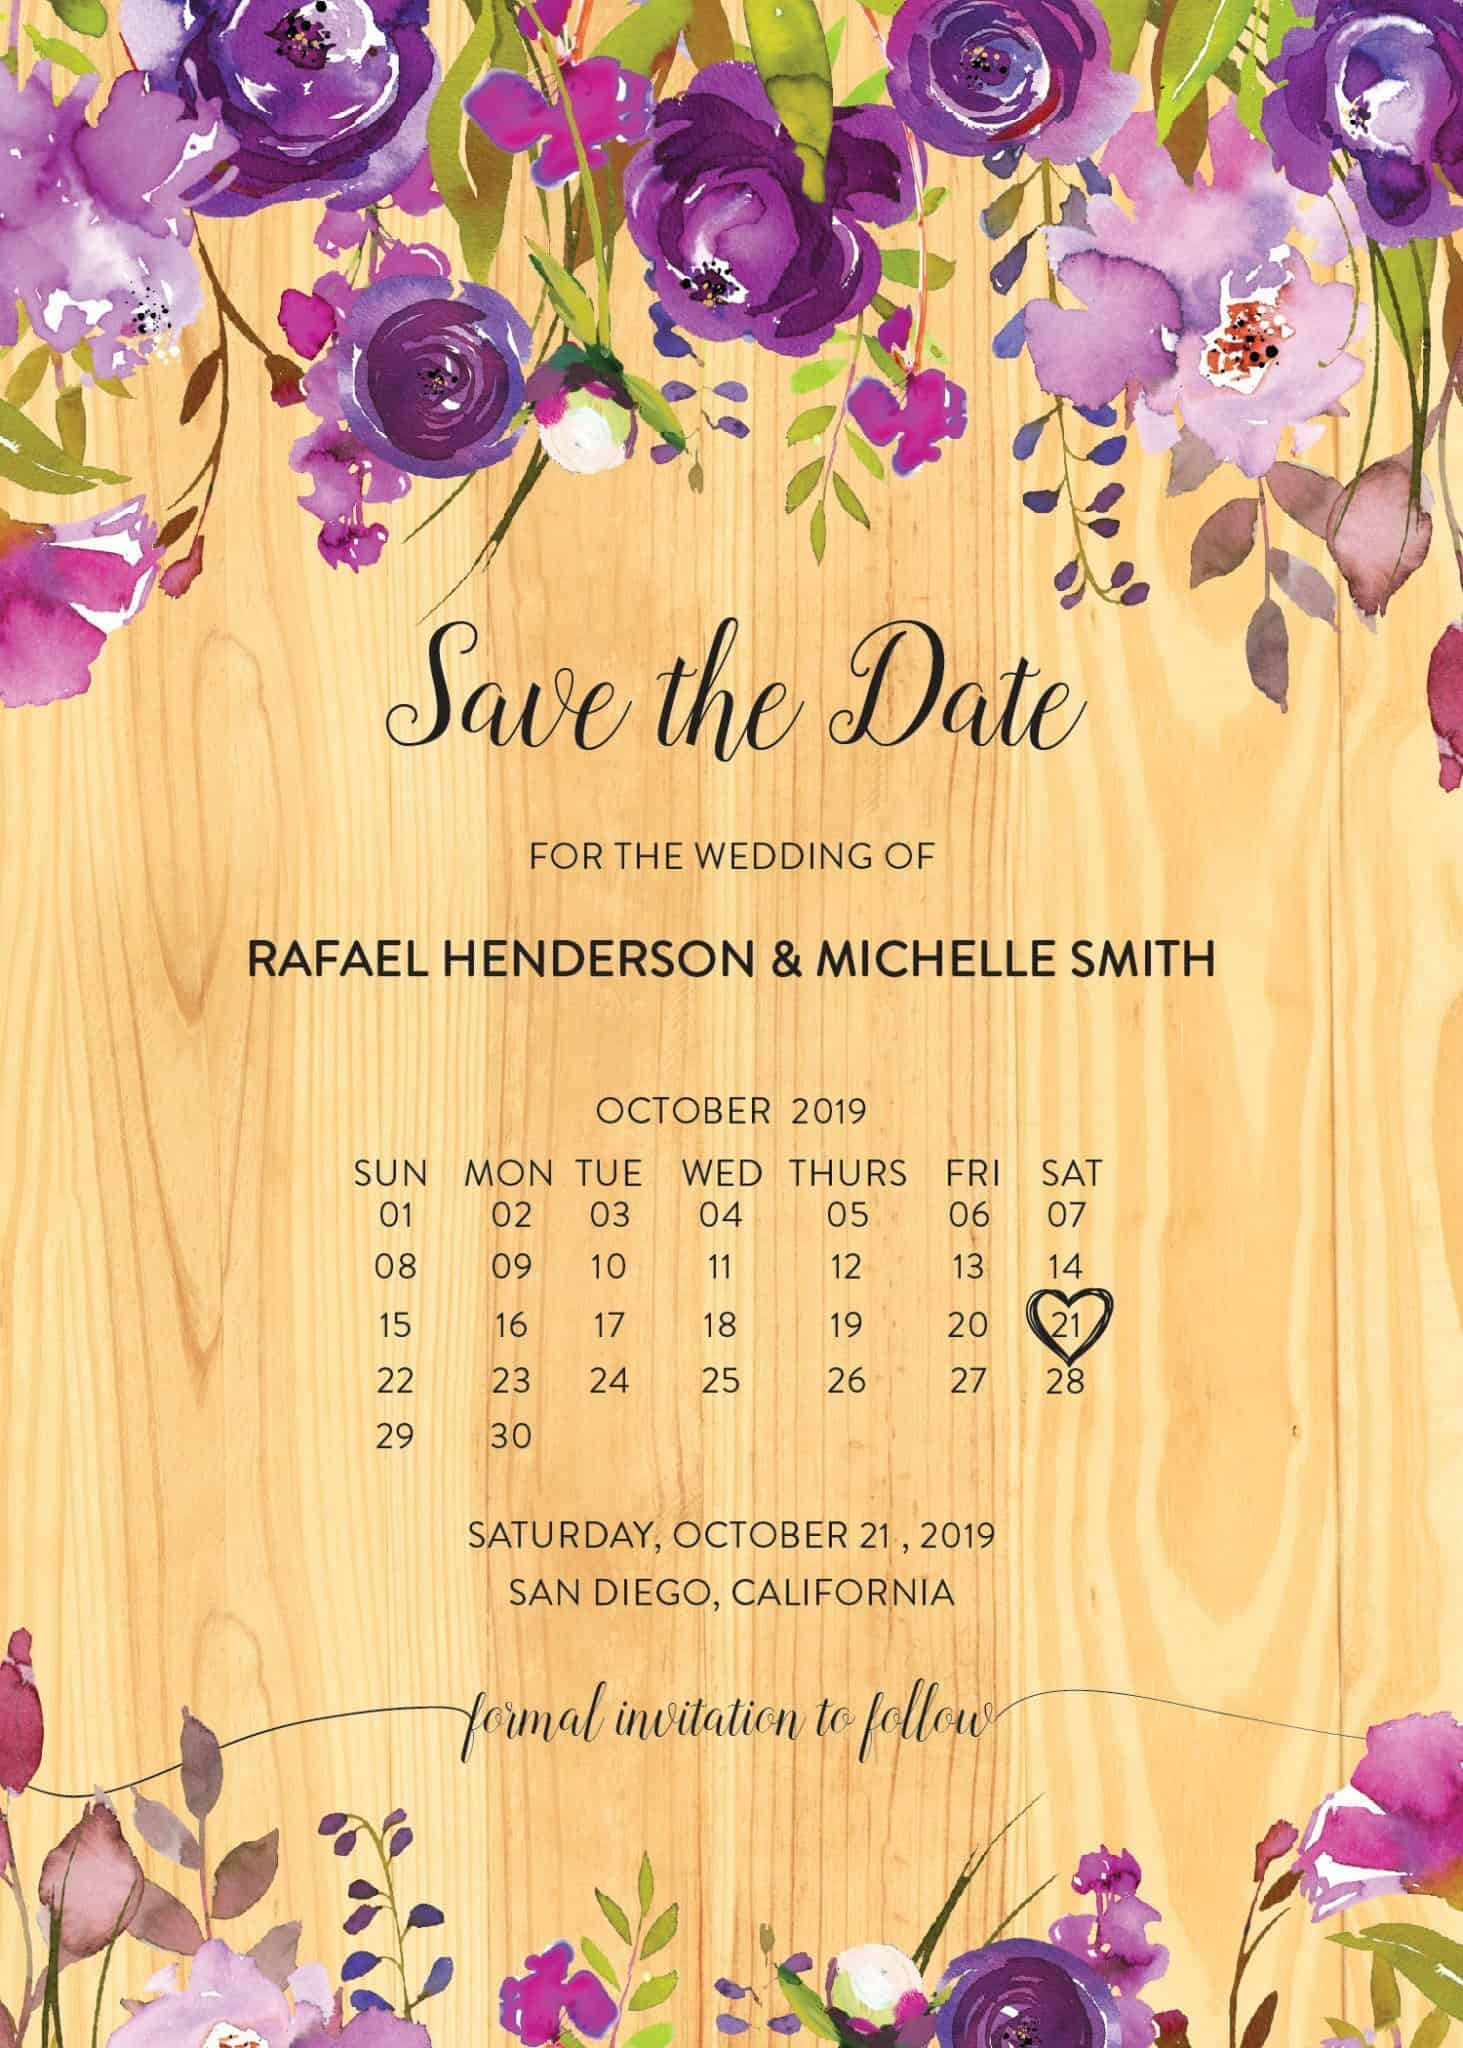 Wooden Rustic Save the Date Cards, Purple Floral Save the Date Cards